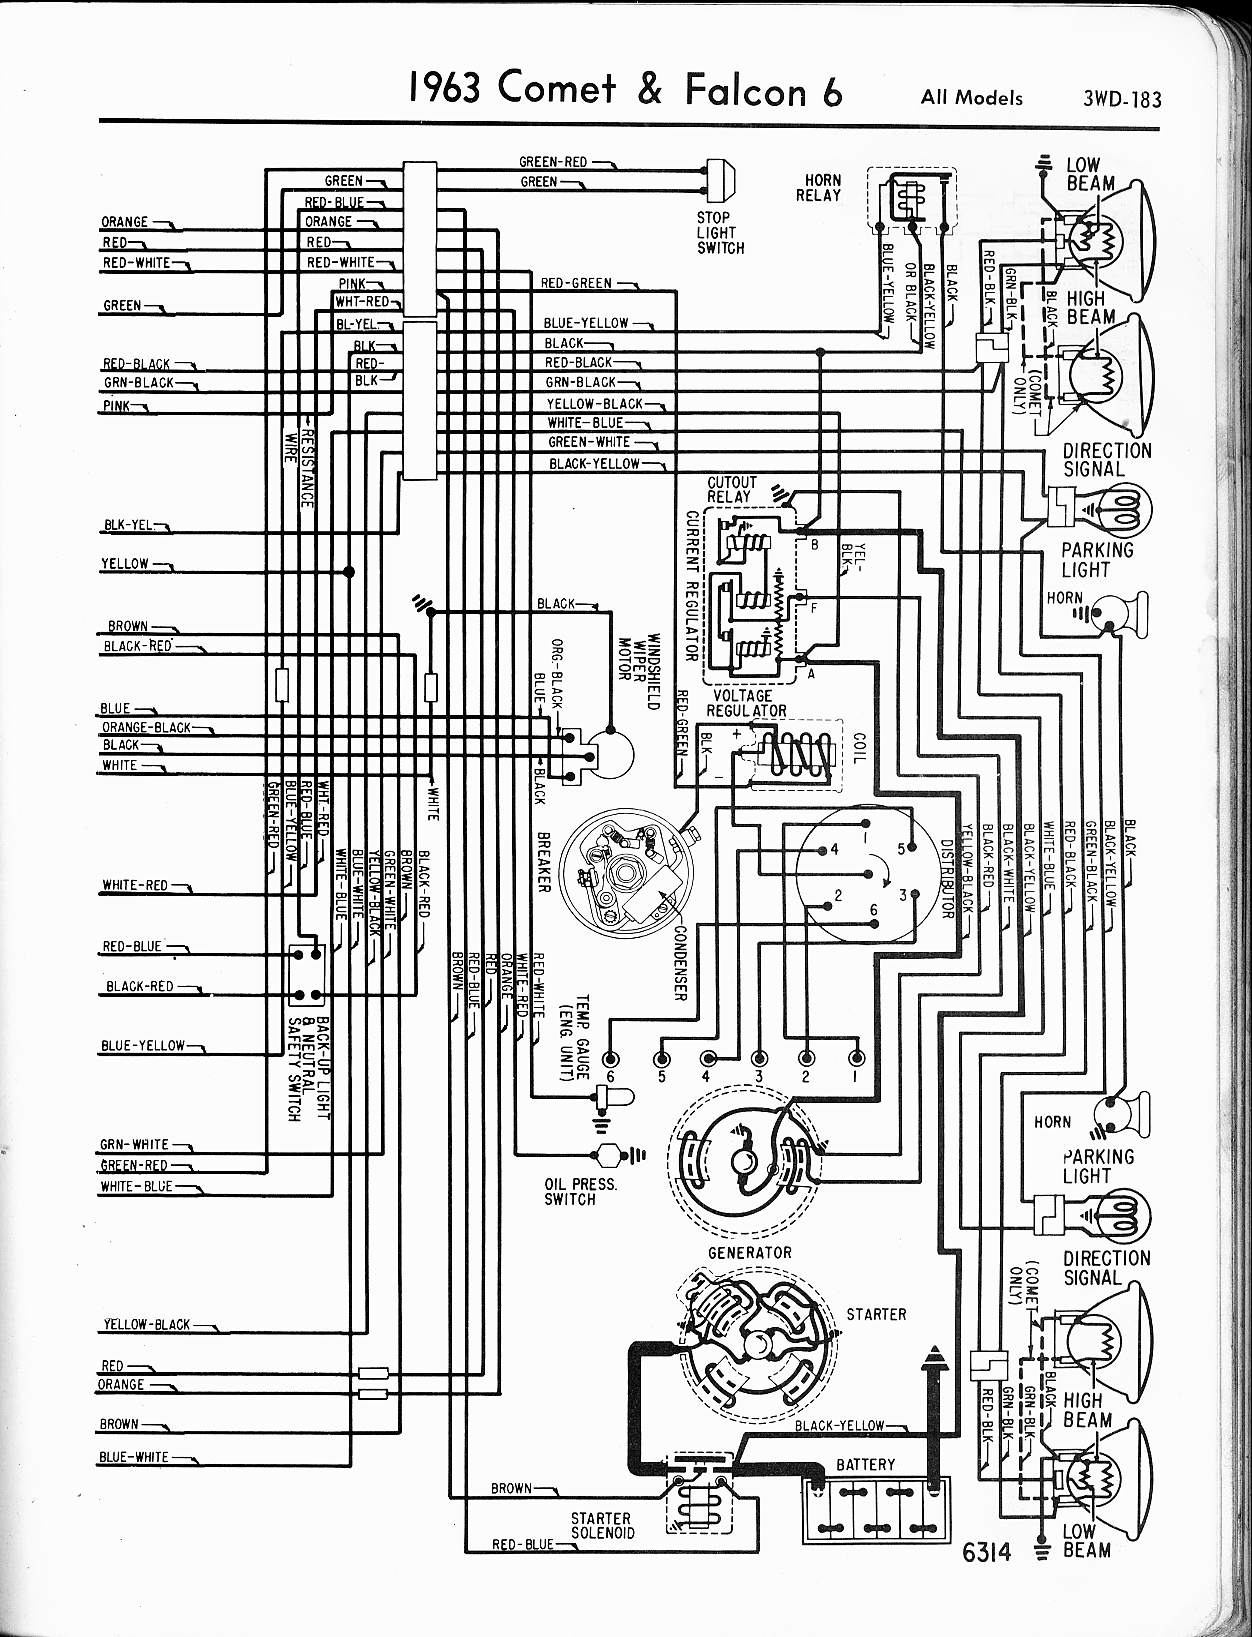 1958 Ford Ranchero Wiring Diagram - Schematics Wiring Diagram  Ford Wiring Diagram on 1954 dodge wiring diagram, 1964 mustang wiring diagram, 1949 cadillac wiring diagram, 1926 ford wiring diagram, 1940 buick wiring diagram, 1967 ford wiring diagram, 1937 ford wiring diagram, 1957 pontiac wiring diagram, 1958 ford continental kit, 1957 plymouth wiring diagram, 1957 dodge wiring diagram, 59 ford wiring diagram, 1930 ford wiring diagram, 1953 buick wiring diagram, 1950 ford wiring diagram, 1931 ford model a wiring diagram, 1955 dodge wiring diagram, 1955 buick wiring diagram, 1963 ford wiring diagram, 1950 cadillac wiring diagram,